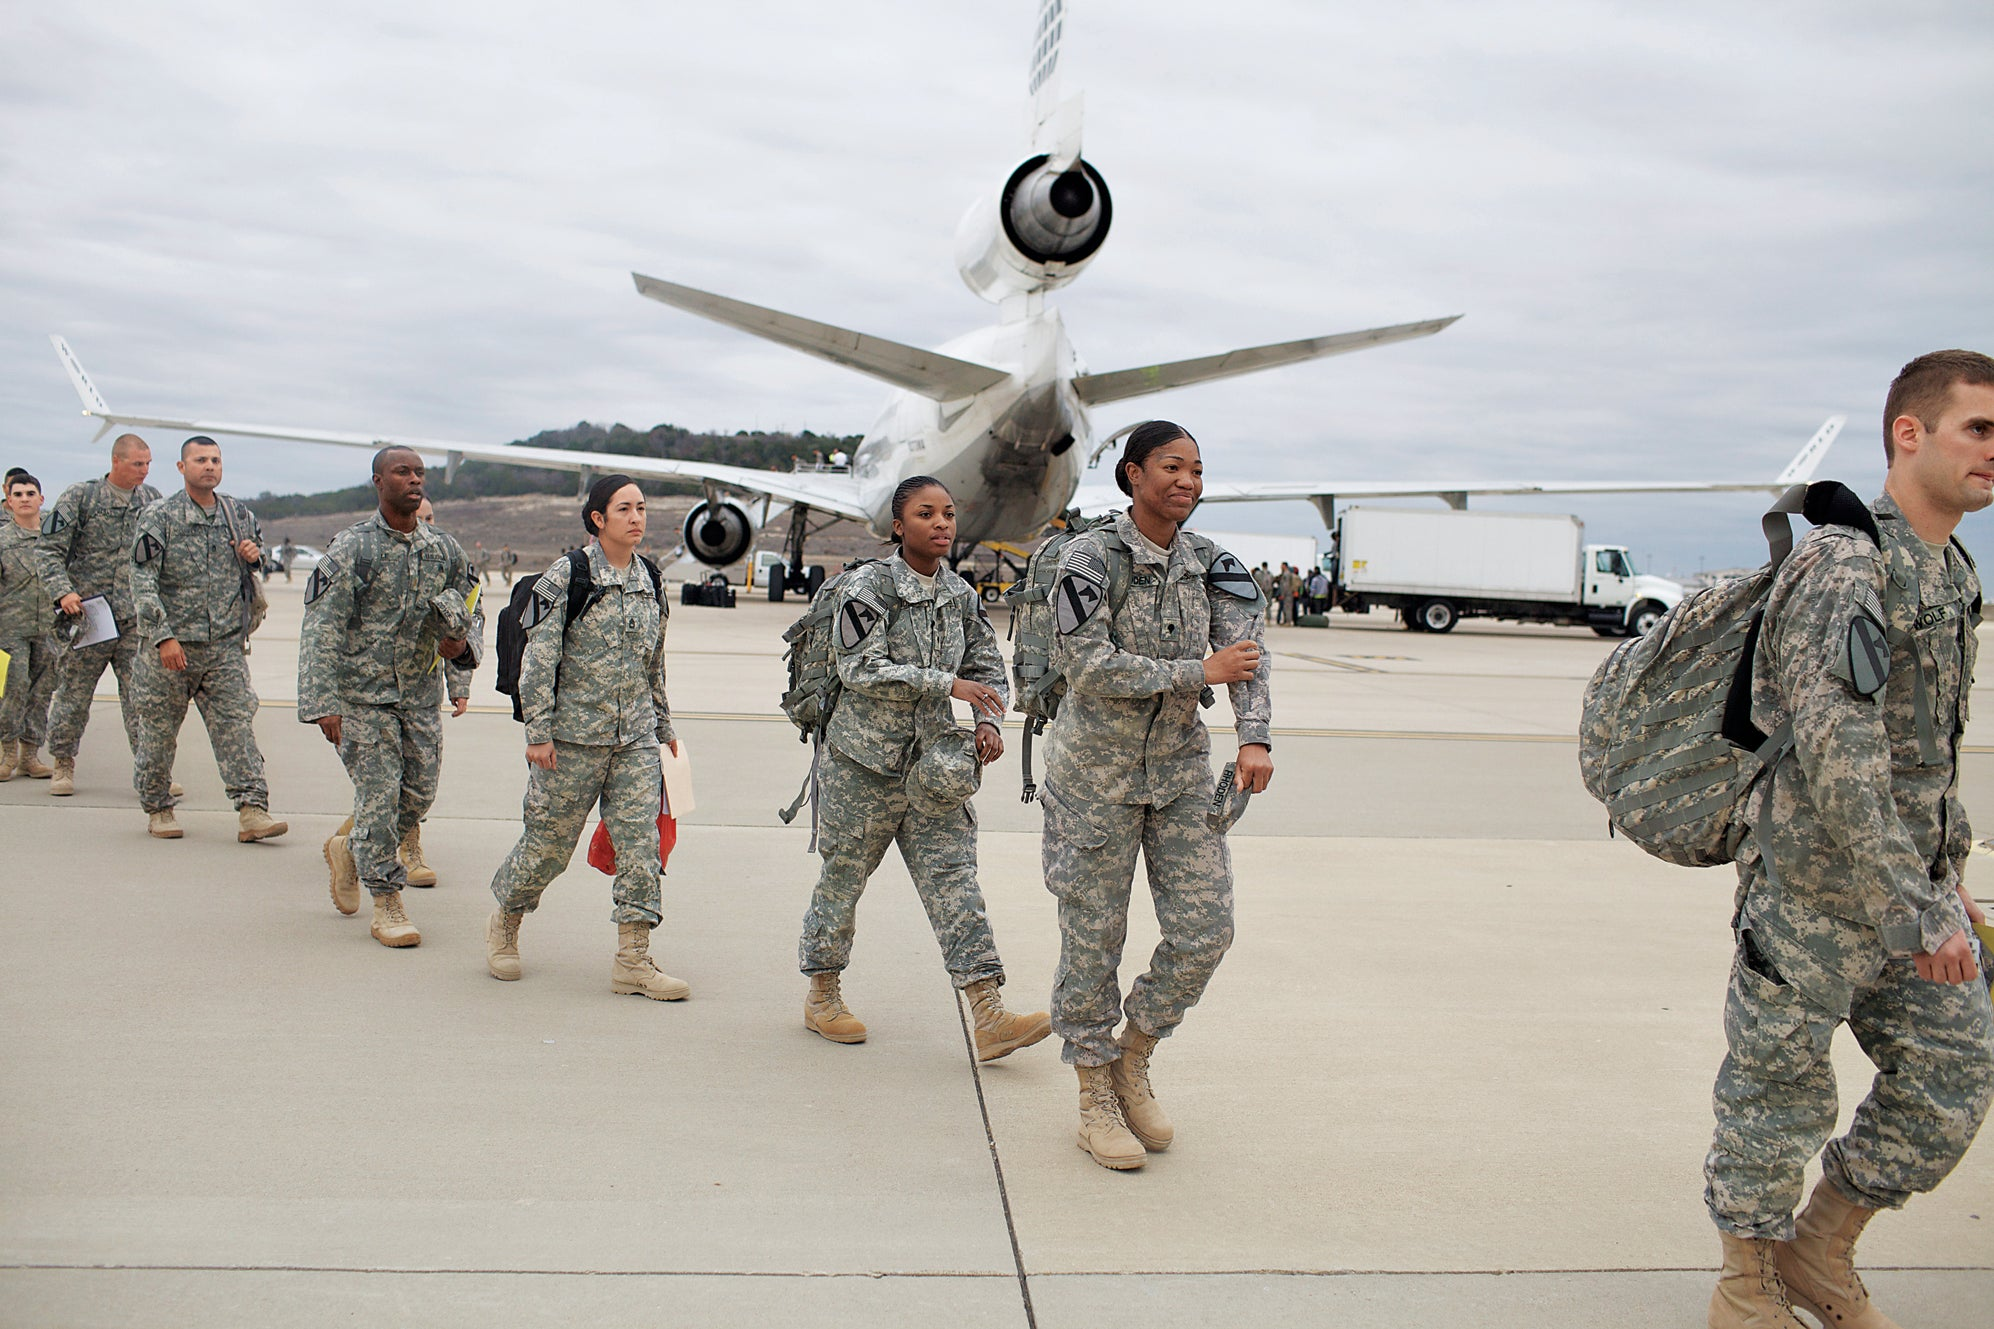 Back in the U.S.A.: Army Soldiers Return Home and Discuss What's Next